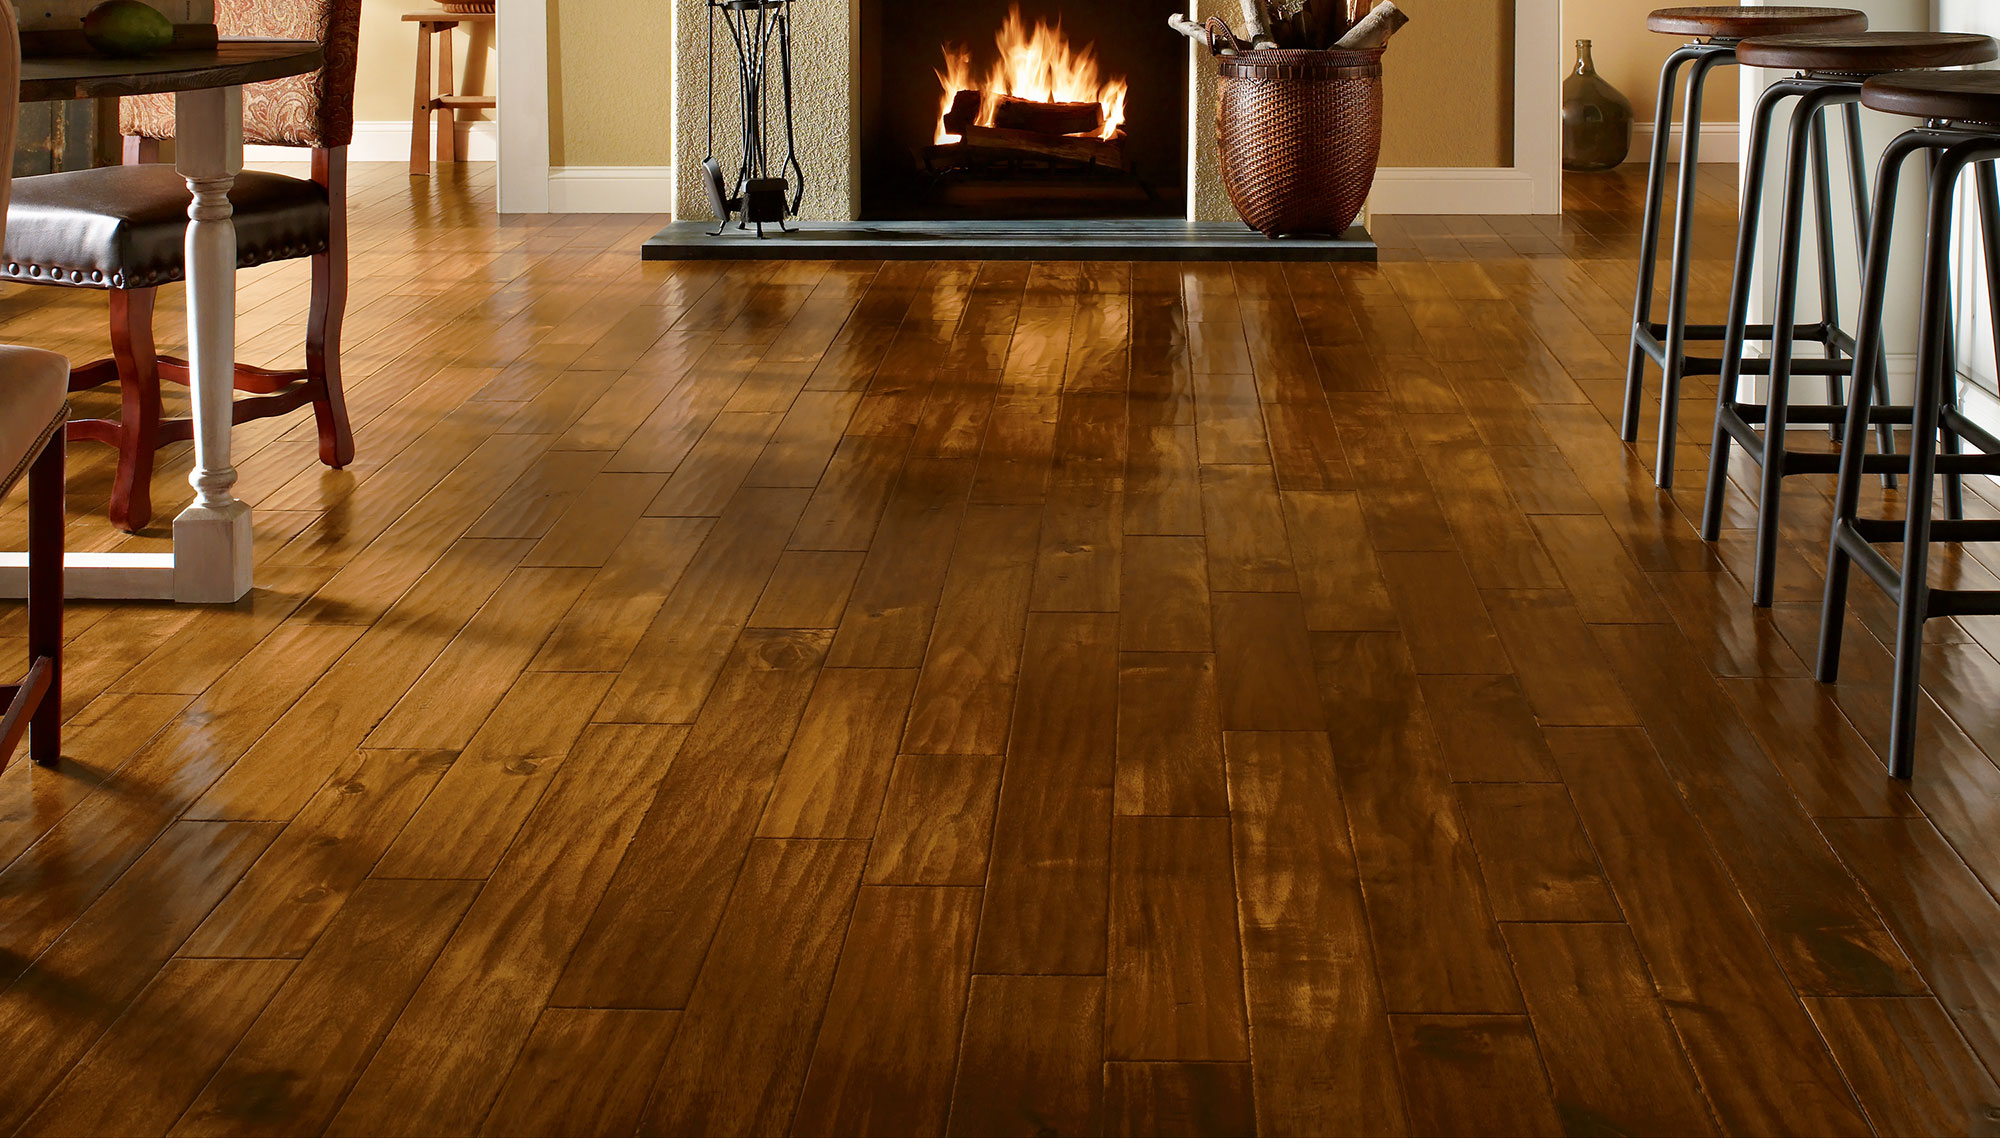 Natural Hardwood Floor Cleaning Products And Their Benefits